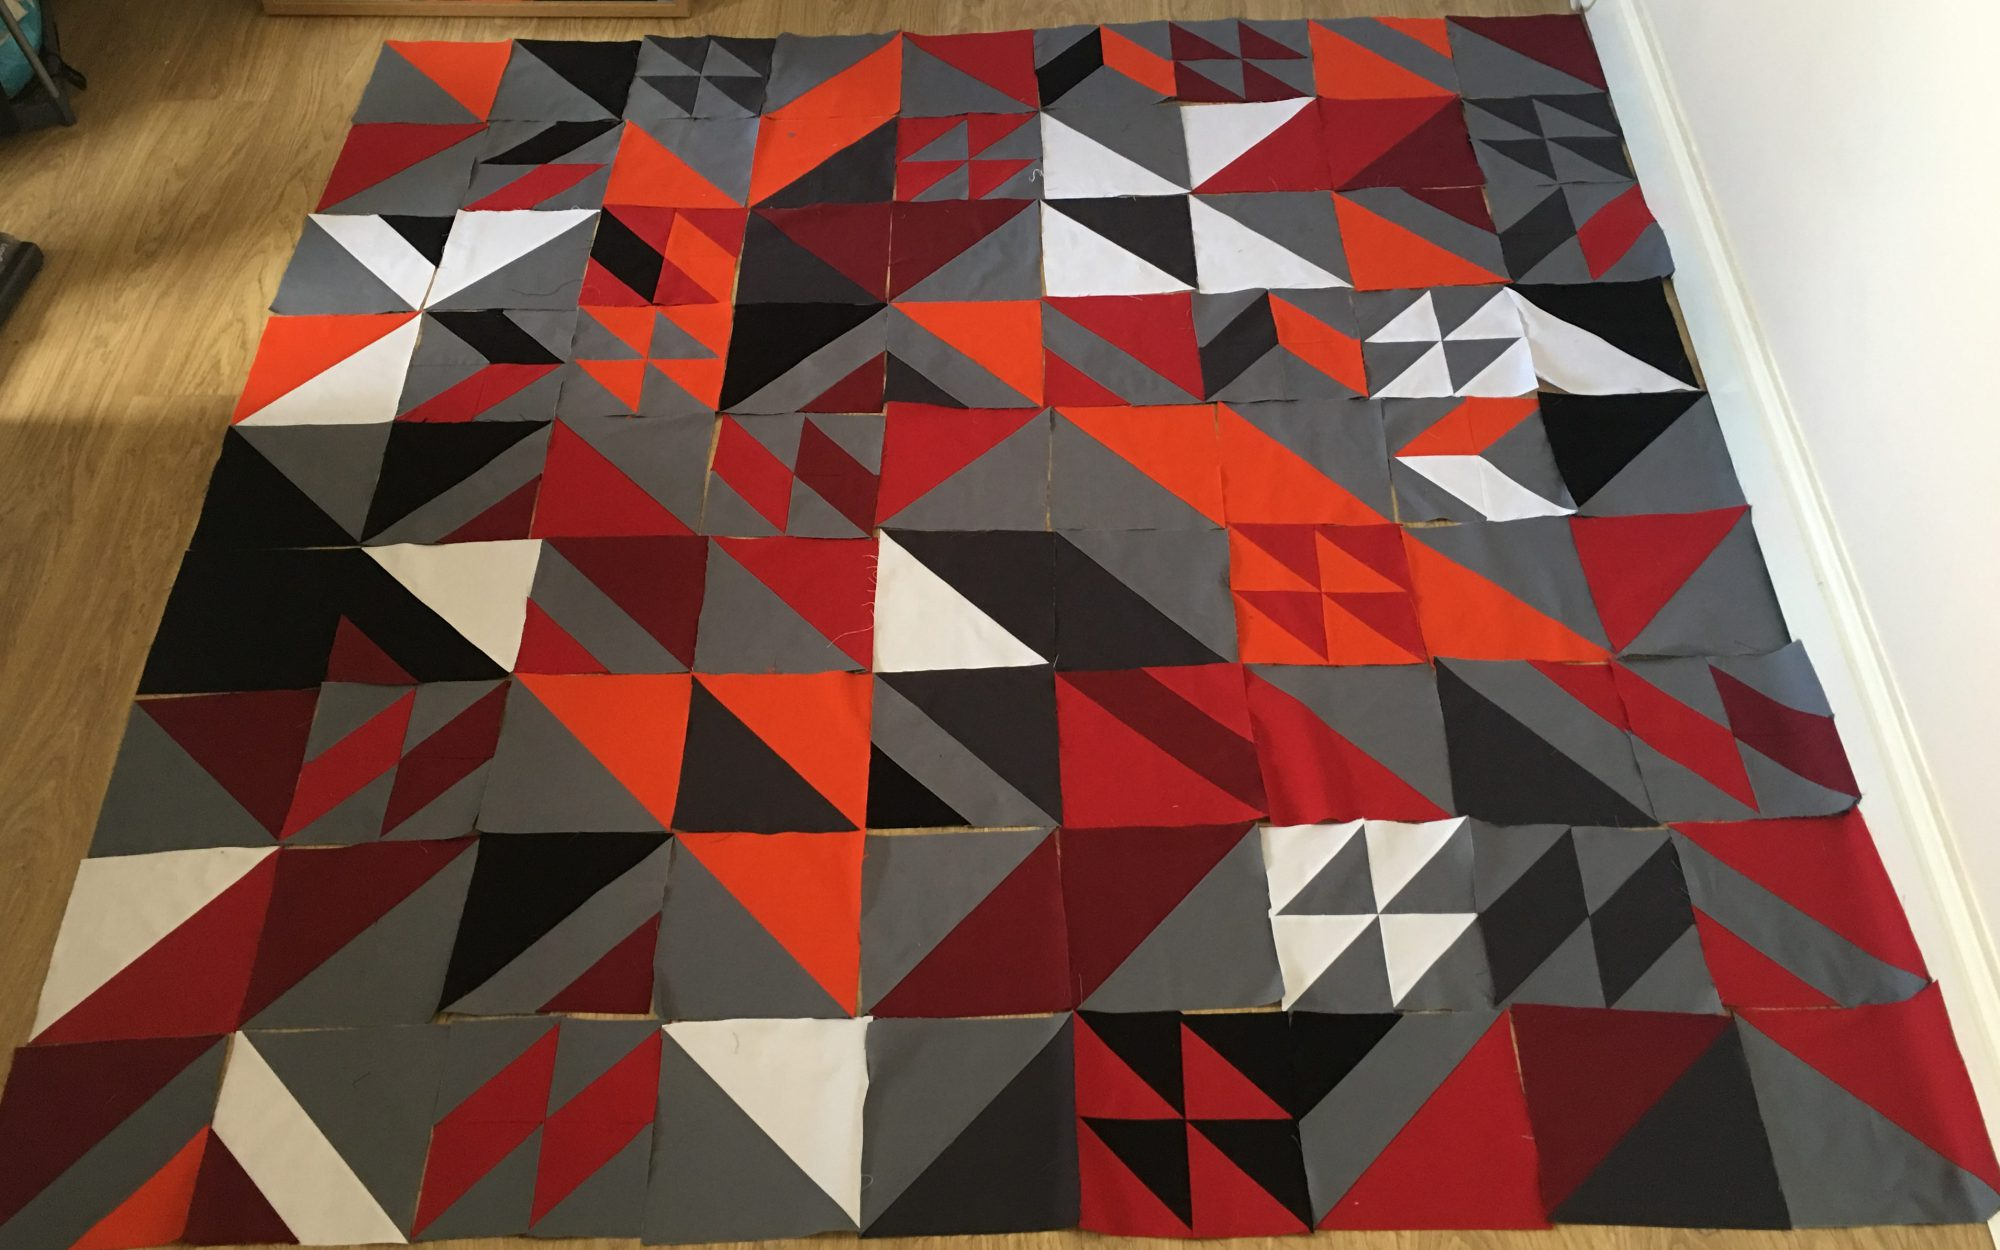 Beverly's Rebel quilt from Week 23